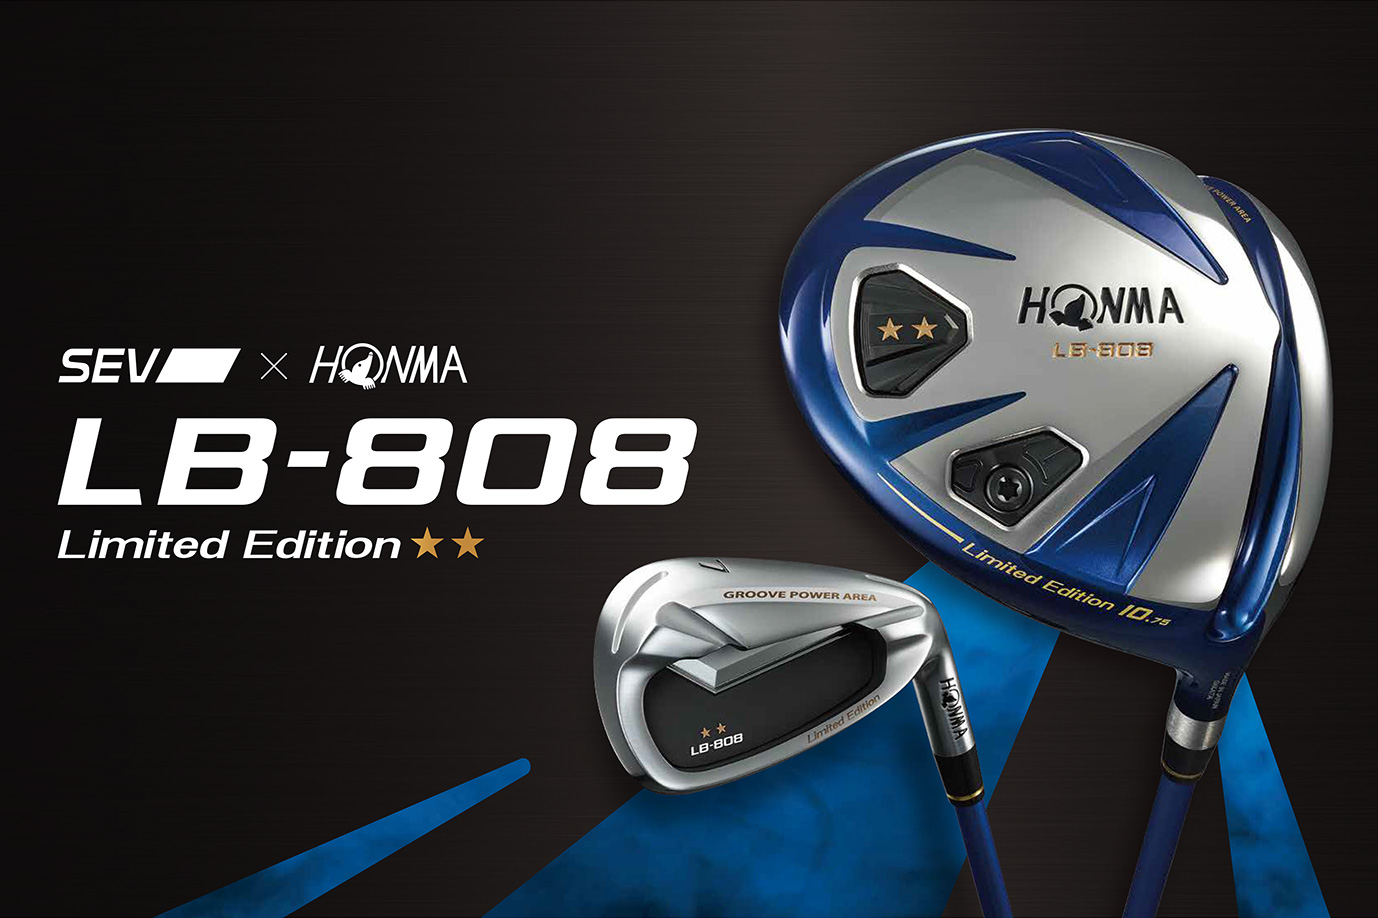 HONMA LB-808 Limited Edition